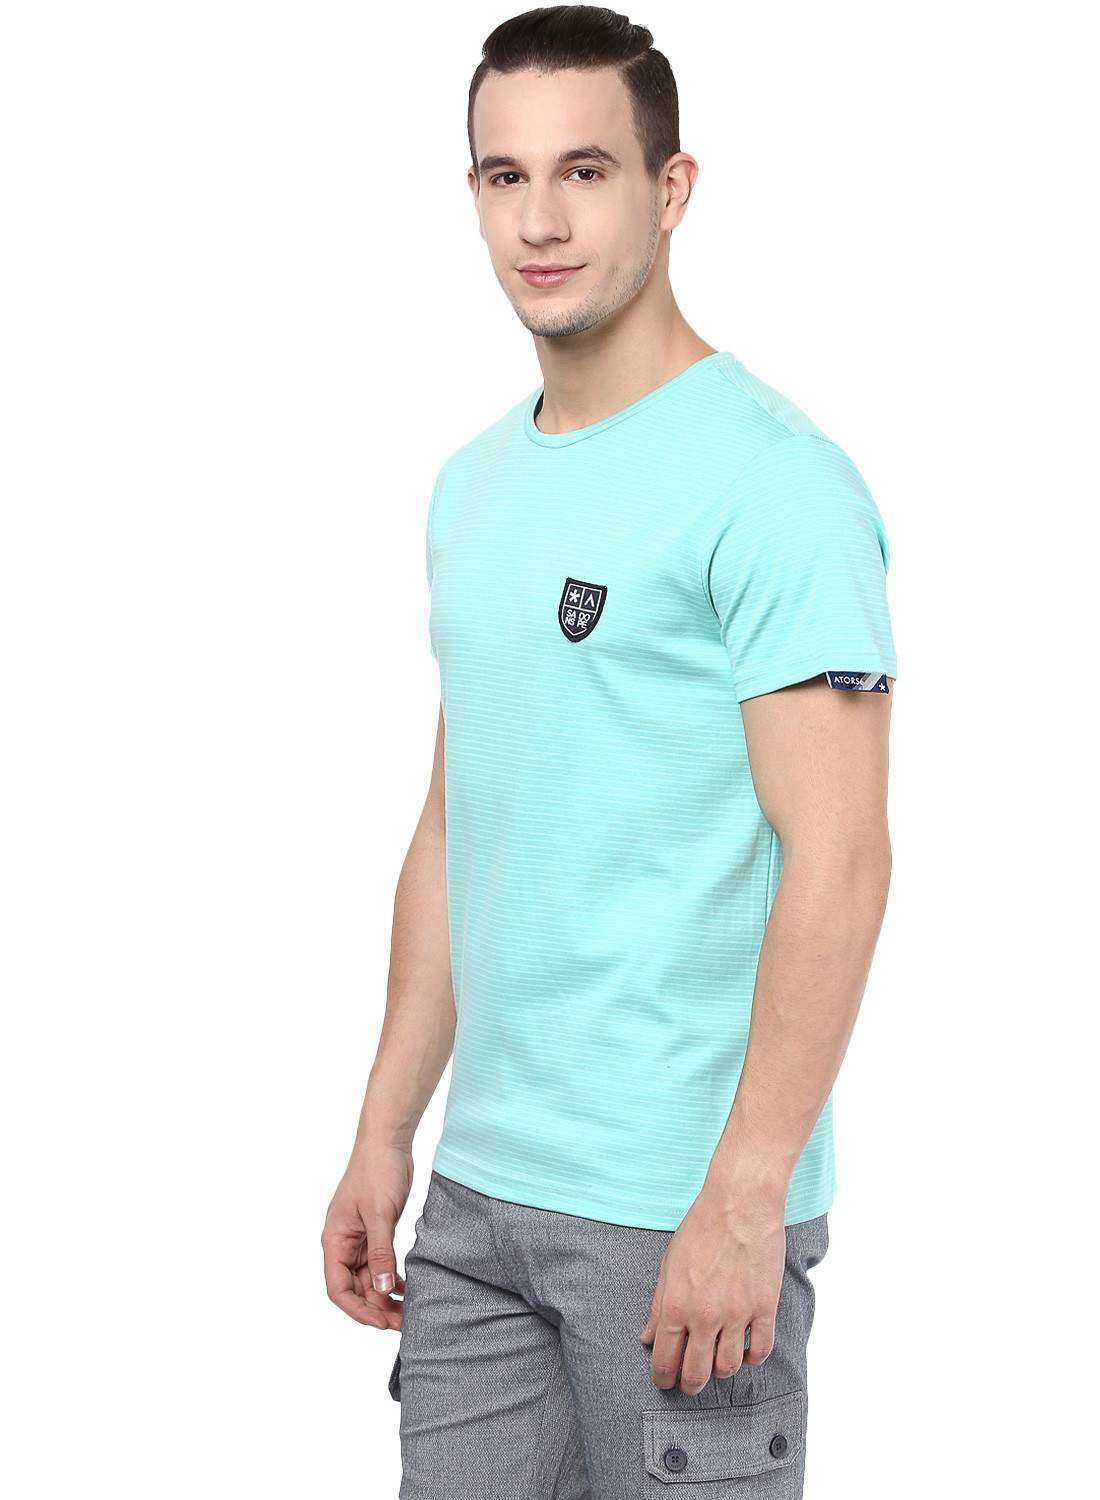 Basic round neck Green Casual tee